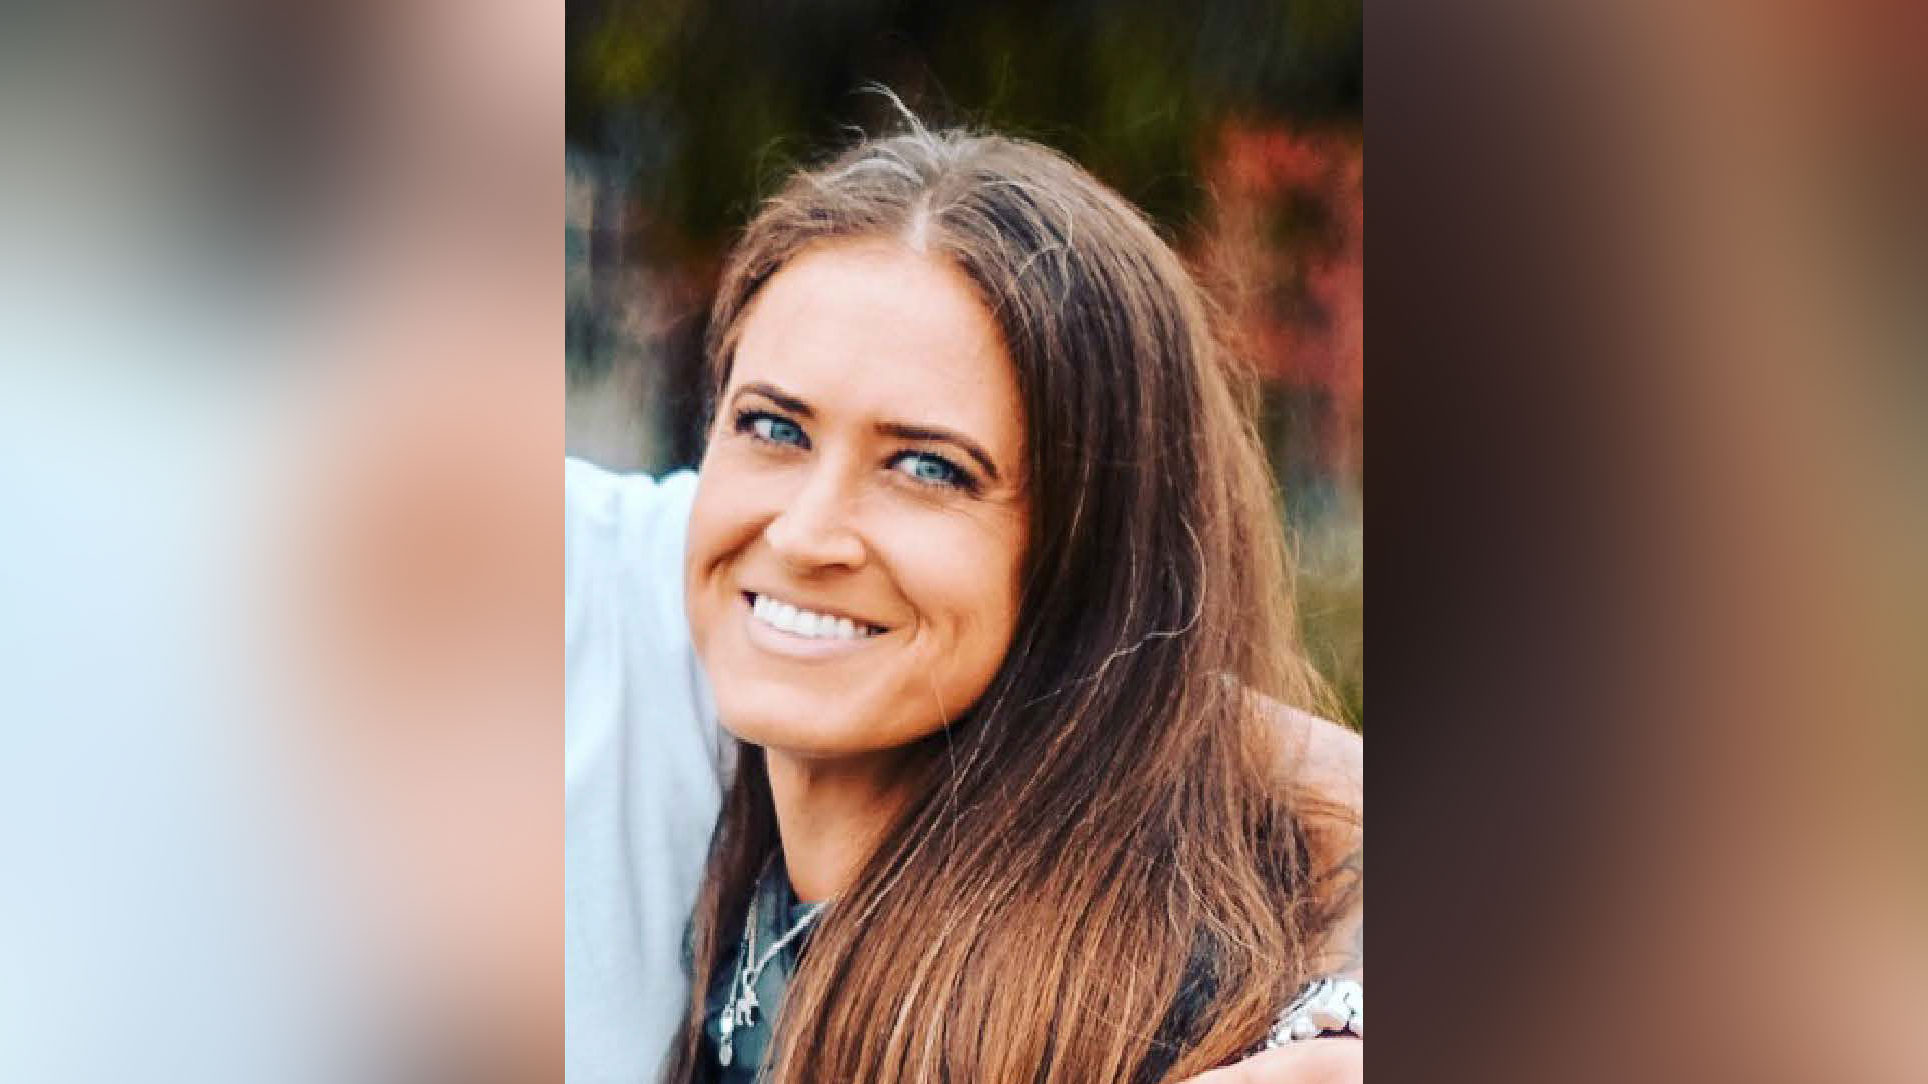 Rescued hiker Holly Courtier was dehydrated, hurt and 'praying to be found' in Zion National Park, her sister says